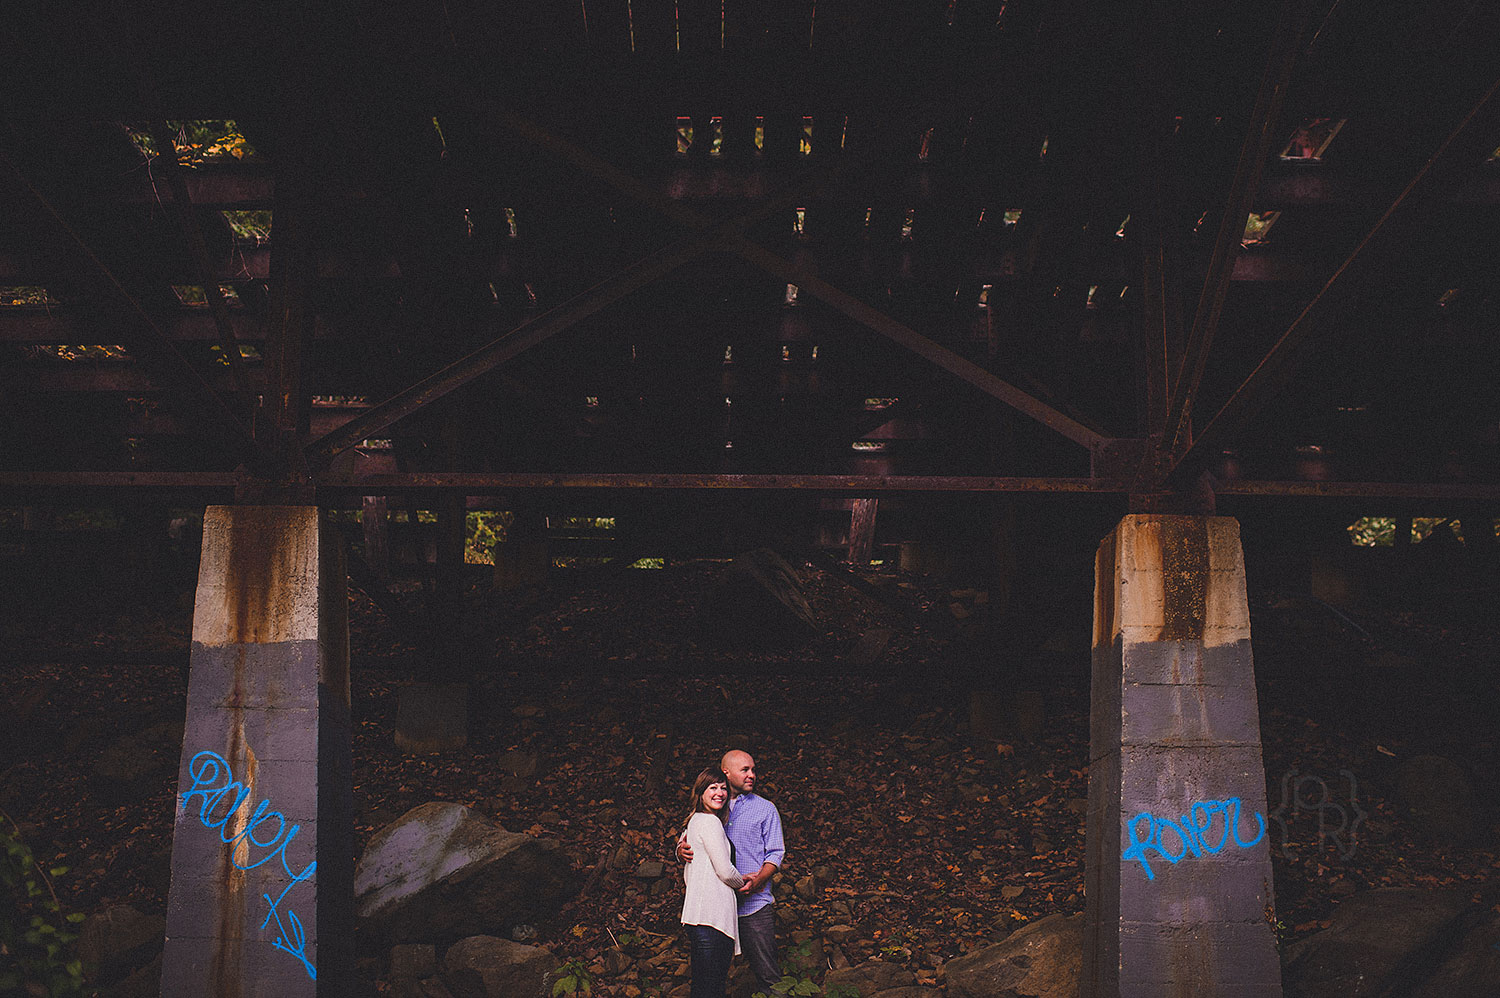 pat-robinson-photography-wilmington-engagement-session-20-2.jpg